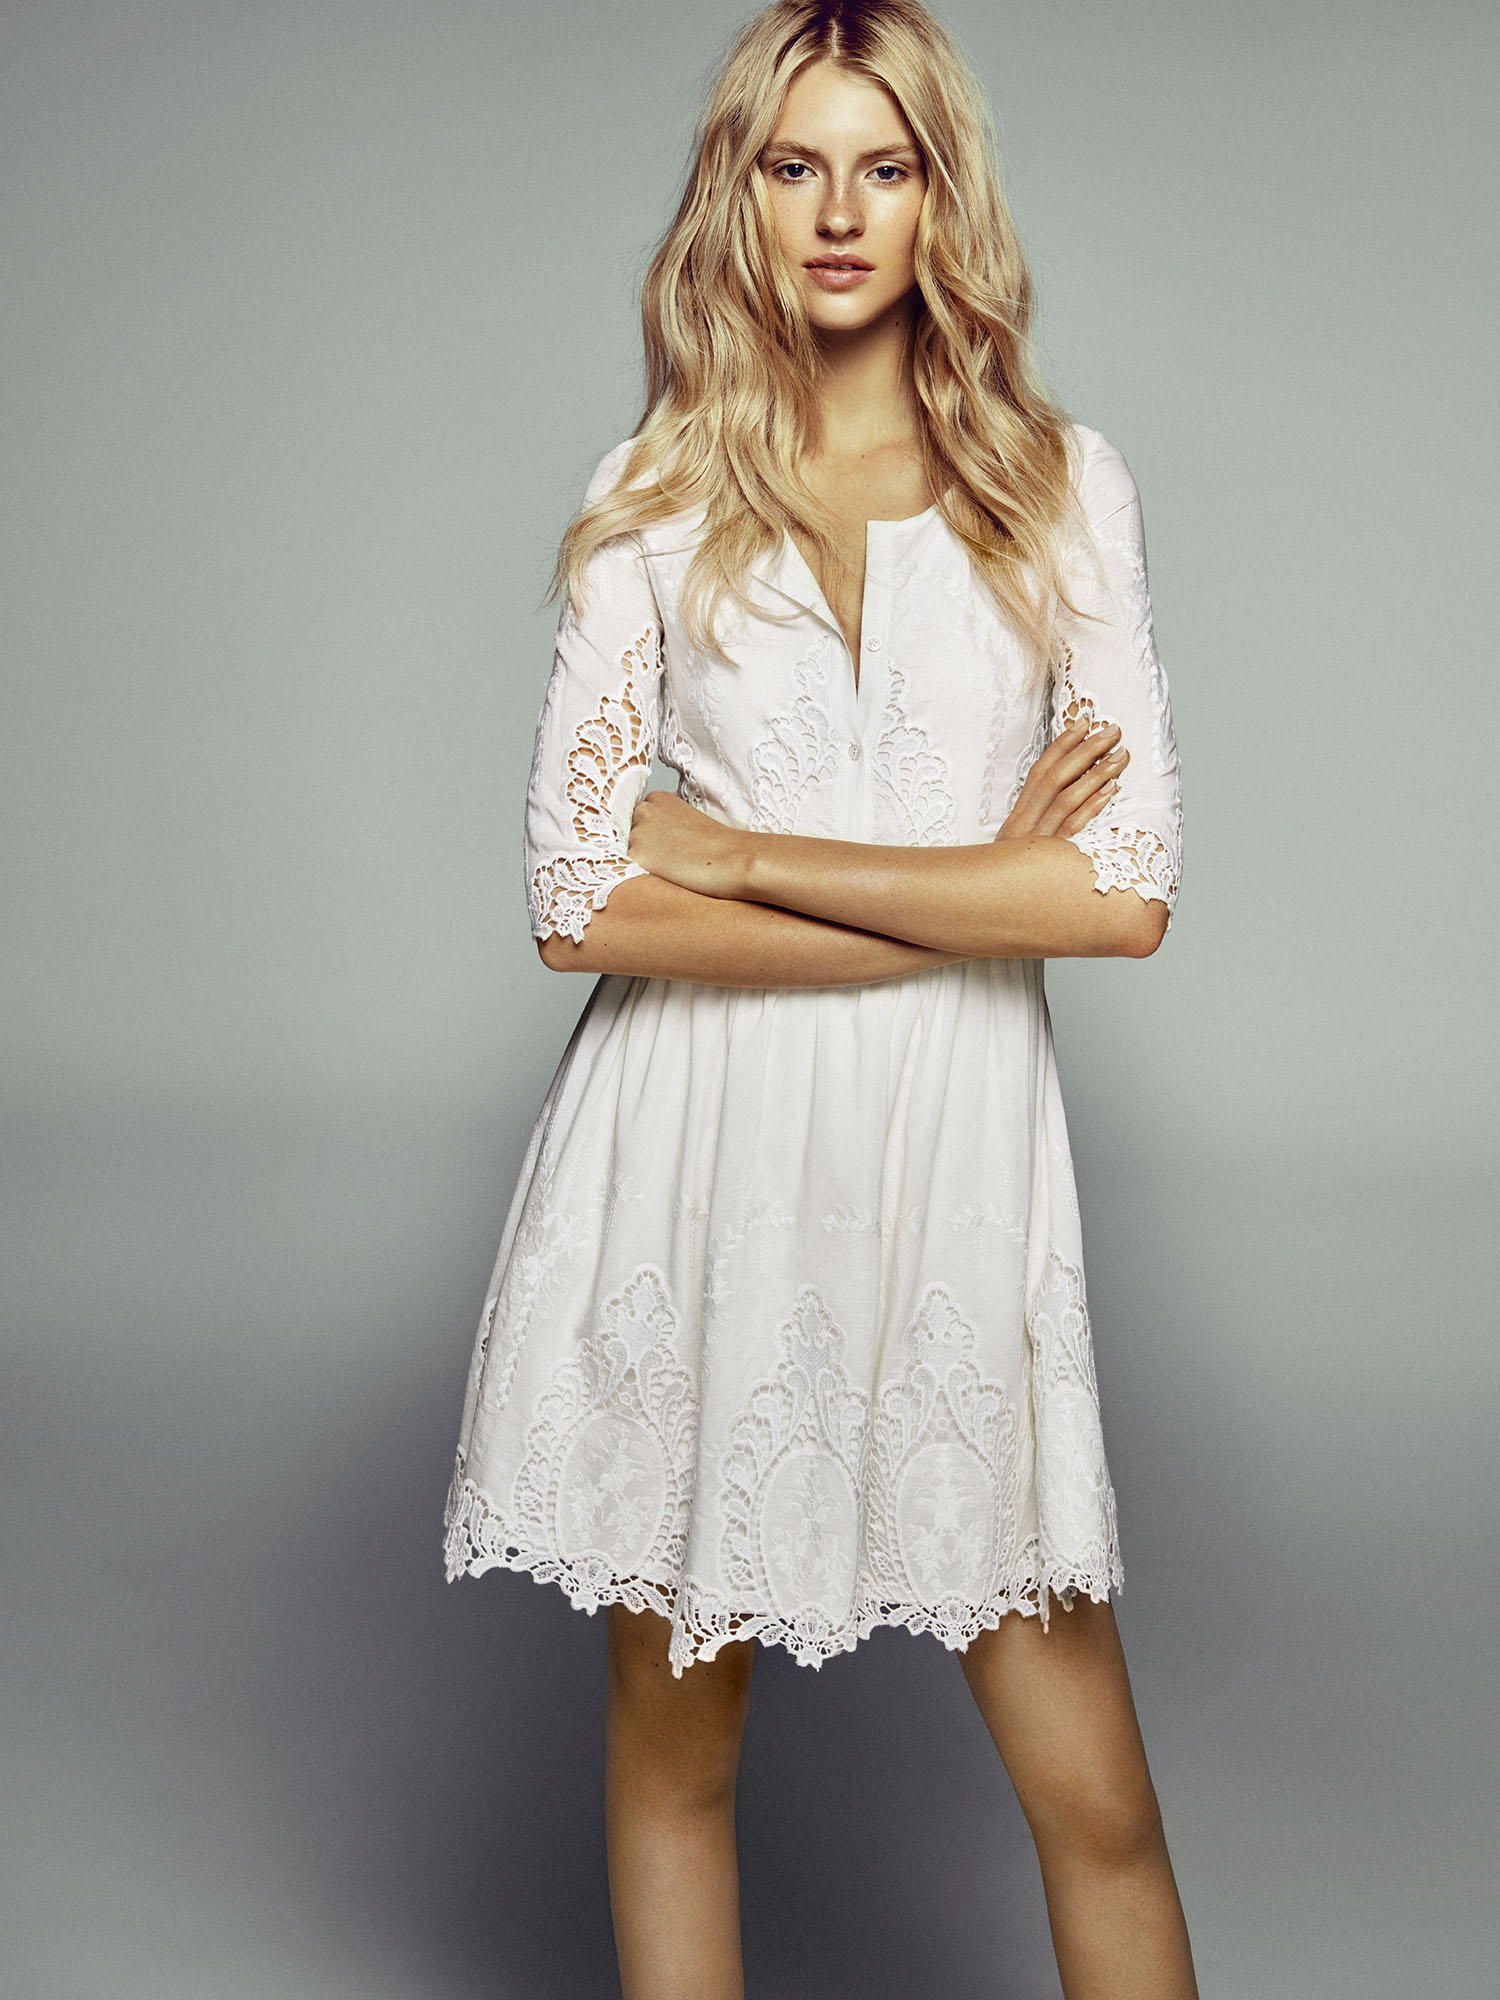 JG One and Other22950 Lilly lace dress.jpg